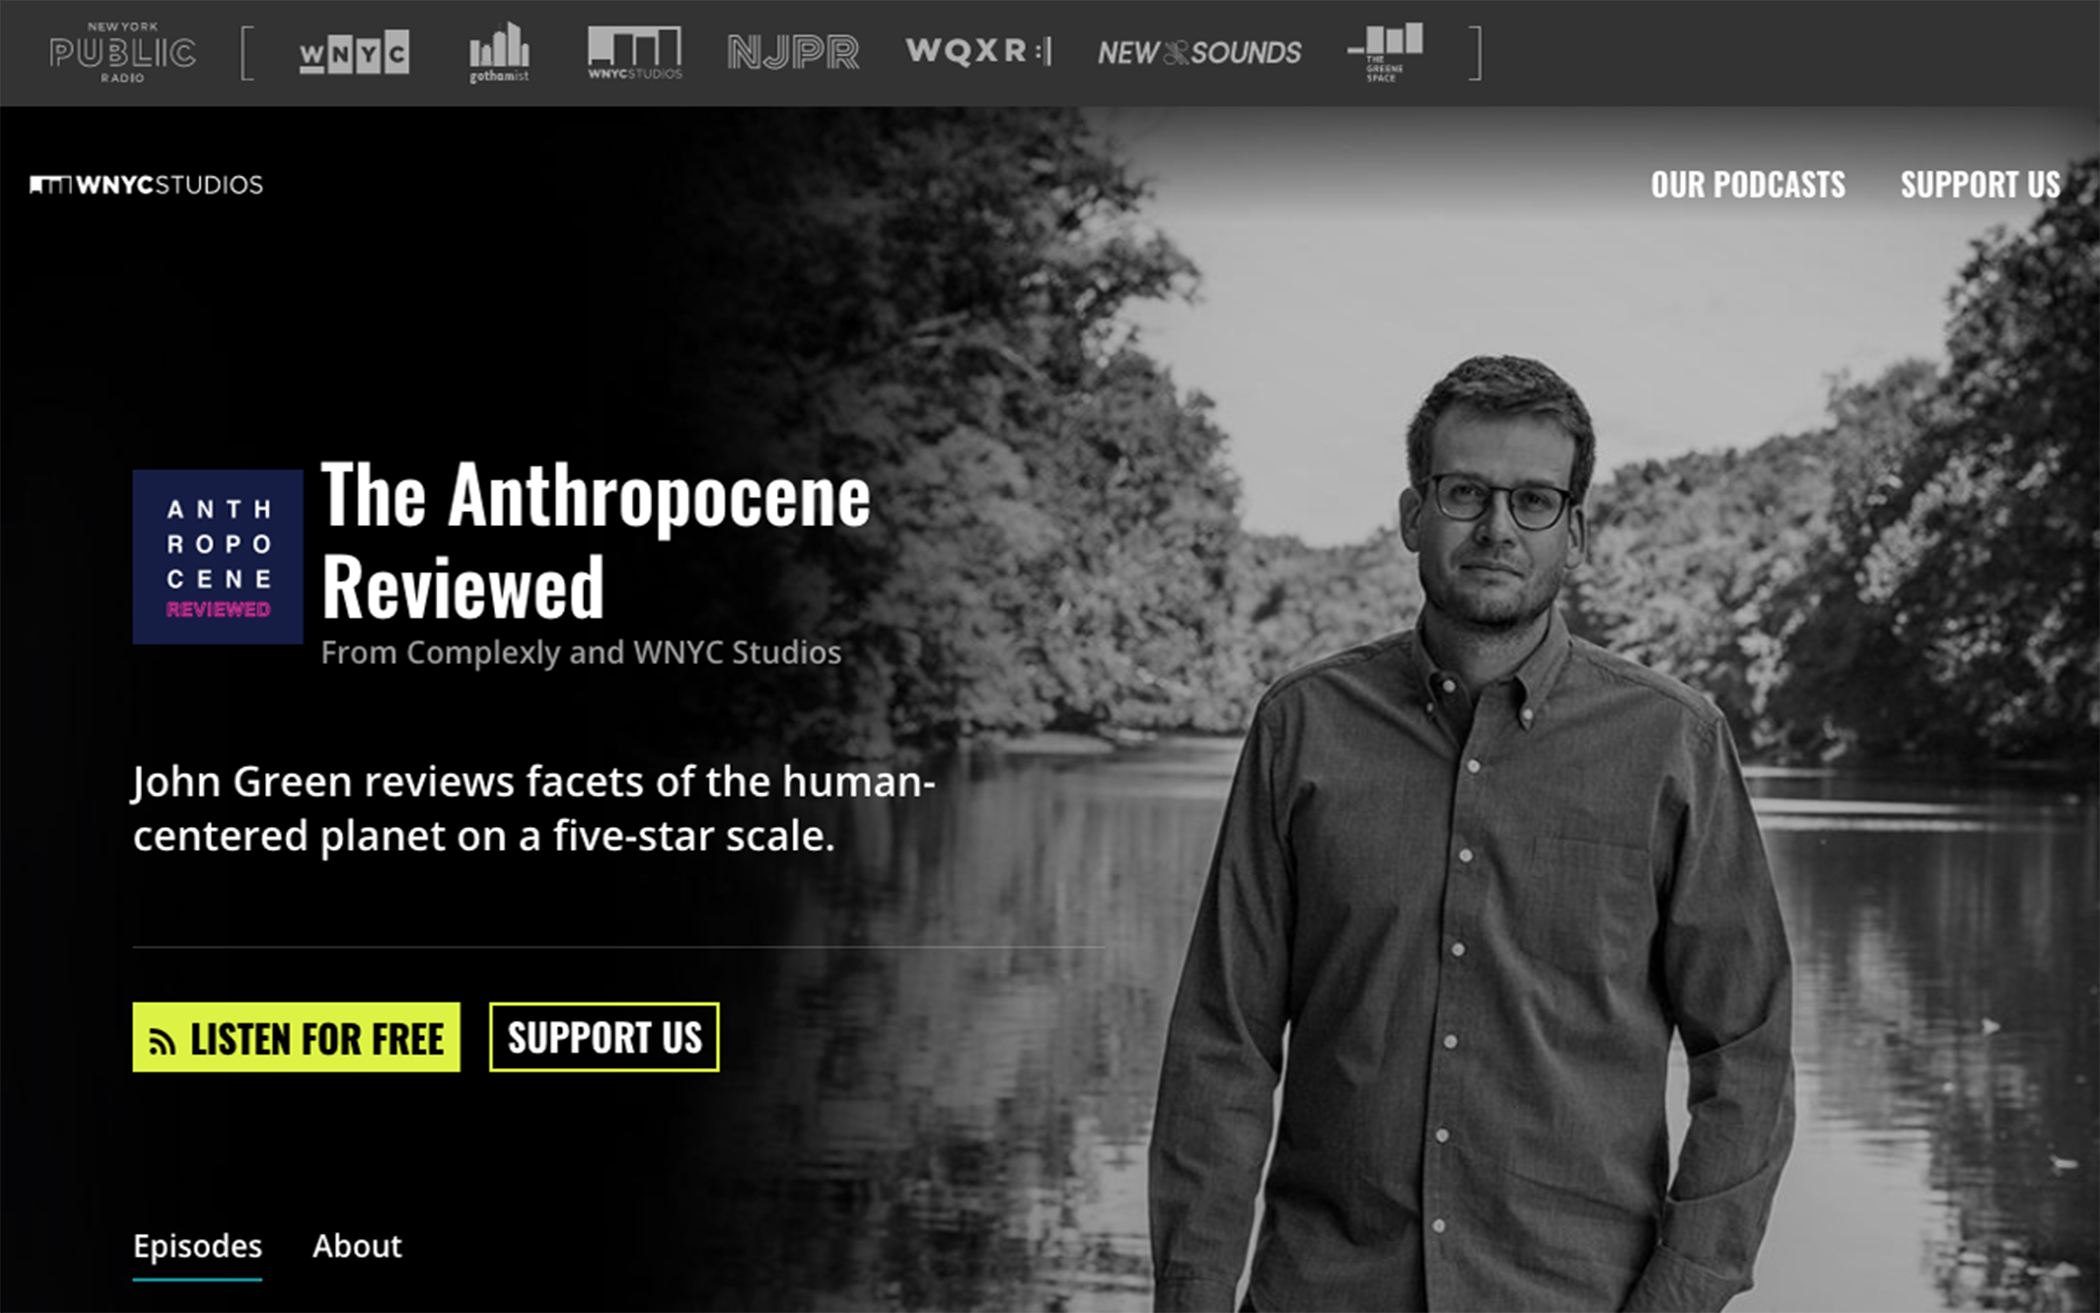 The Anthropocene Reviewed Podcast